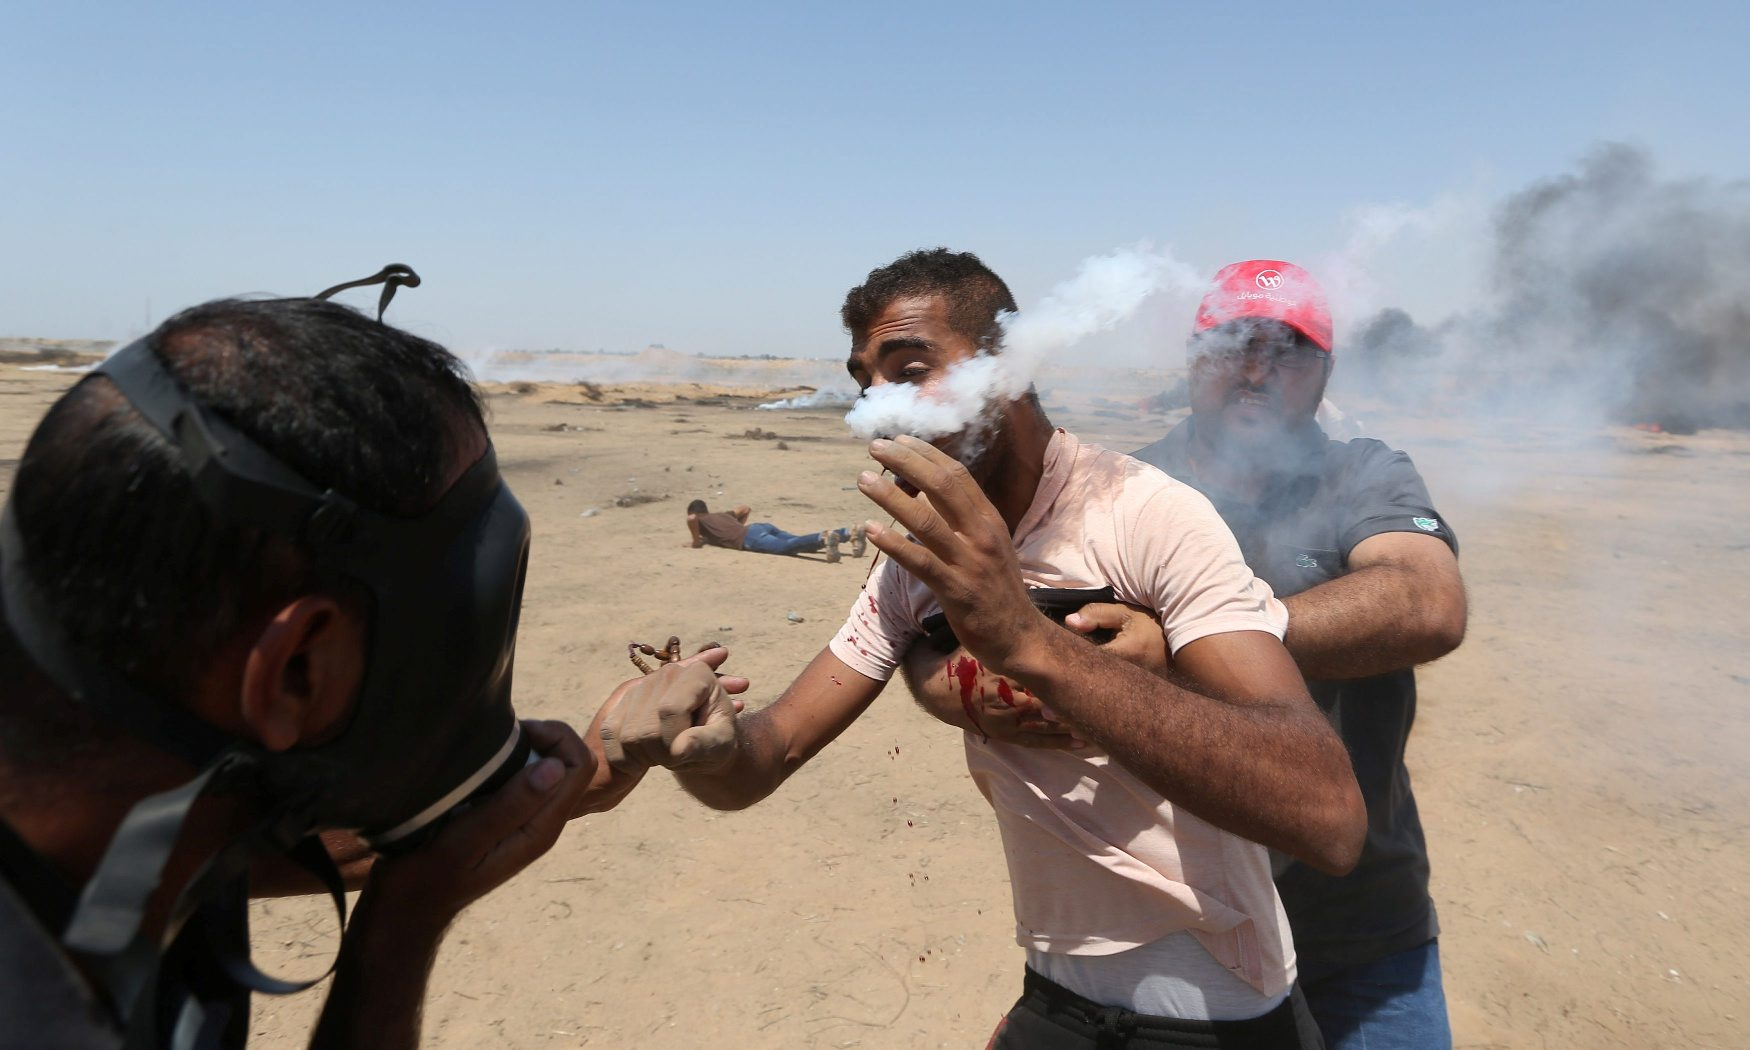 ATTENTION EDITORS - VISUAL COVERAGE OF SCENES OF INJURY OR DEATH A wounded Palestinian demonstrator reacts as he is hit in the face with a tear gas canister fired by Israeli troops during a protest marking al-Quds Day, (Jerusalem Day), at the Israel-Gaza border in the southern Gaza Strip June 8, 2018. REUTERS/Ibraheem Abu Mustafa